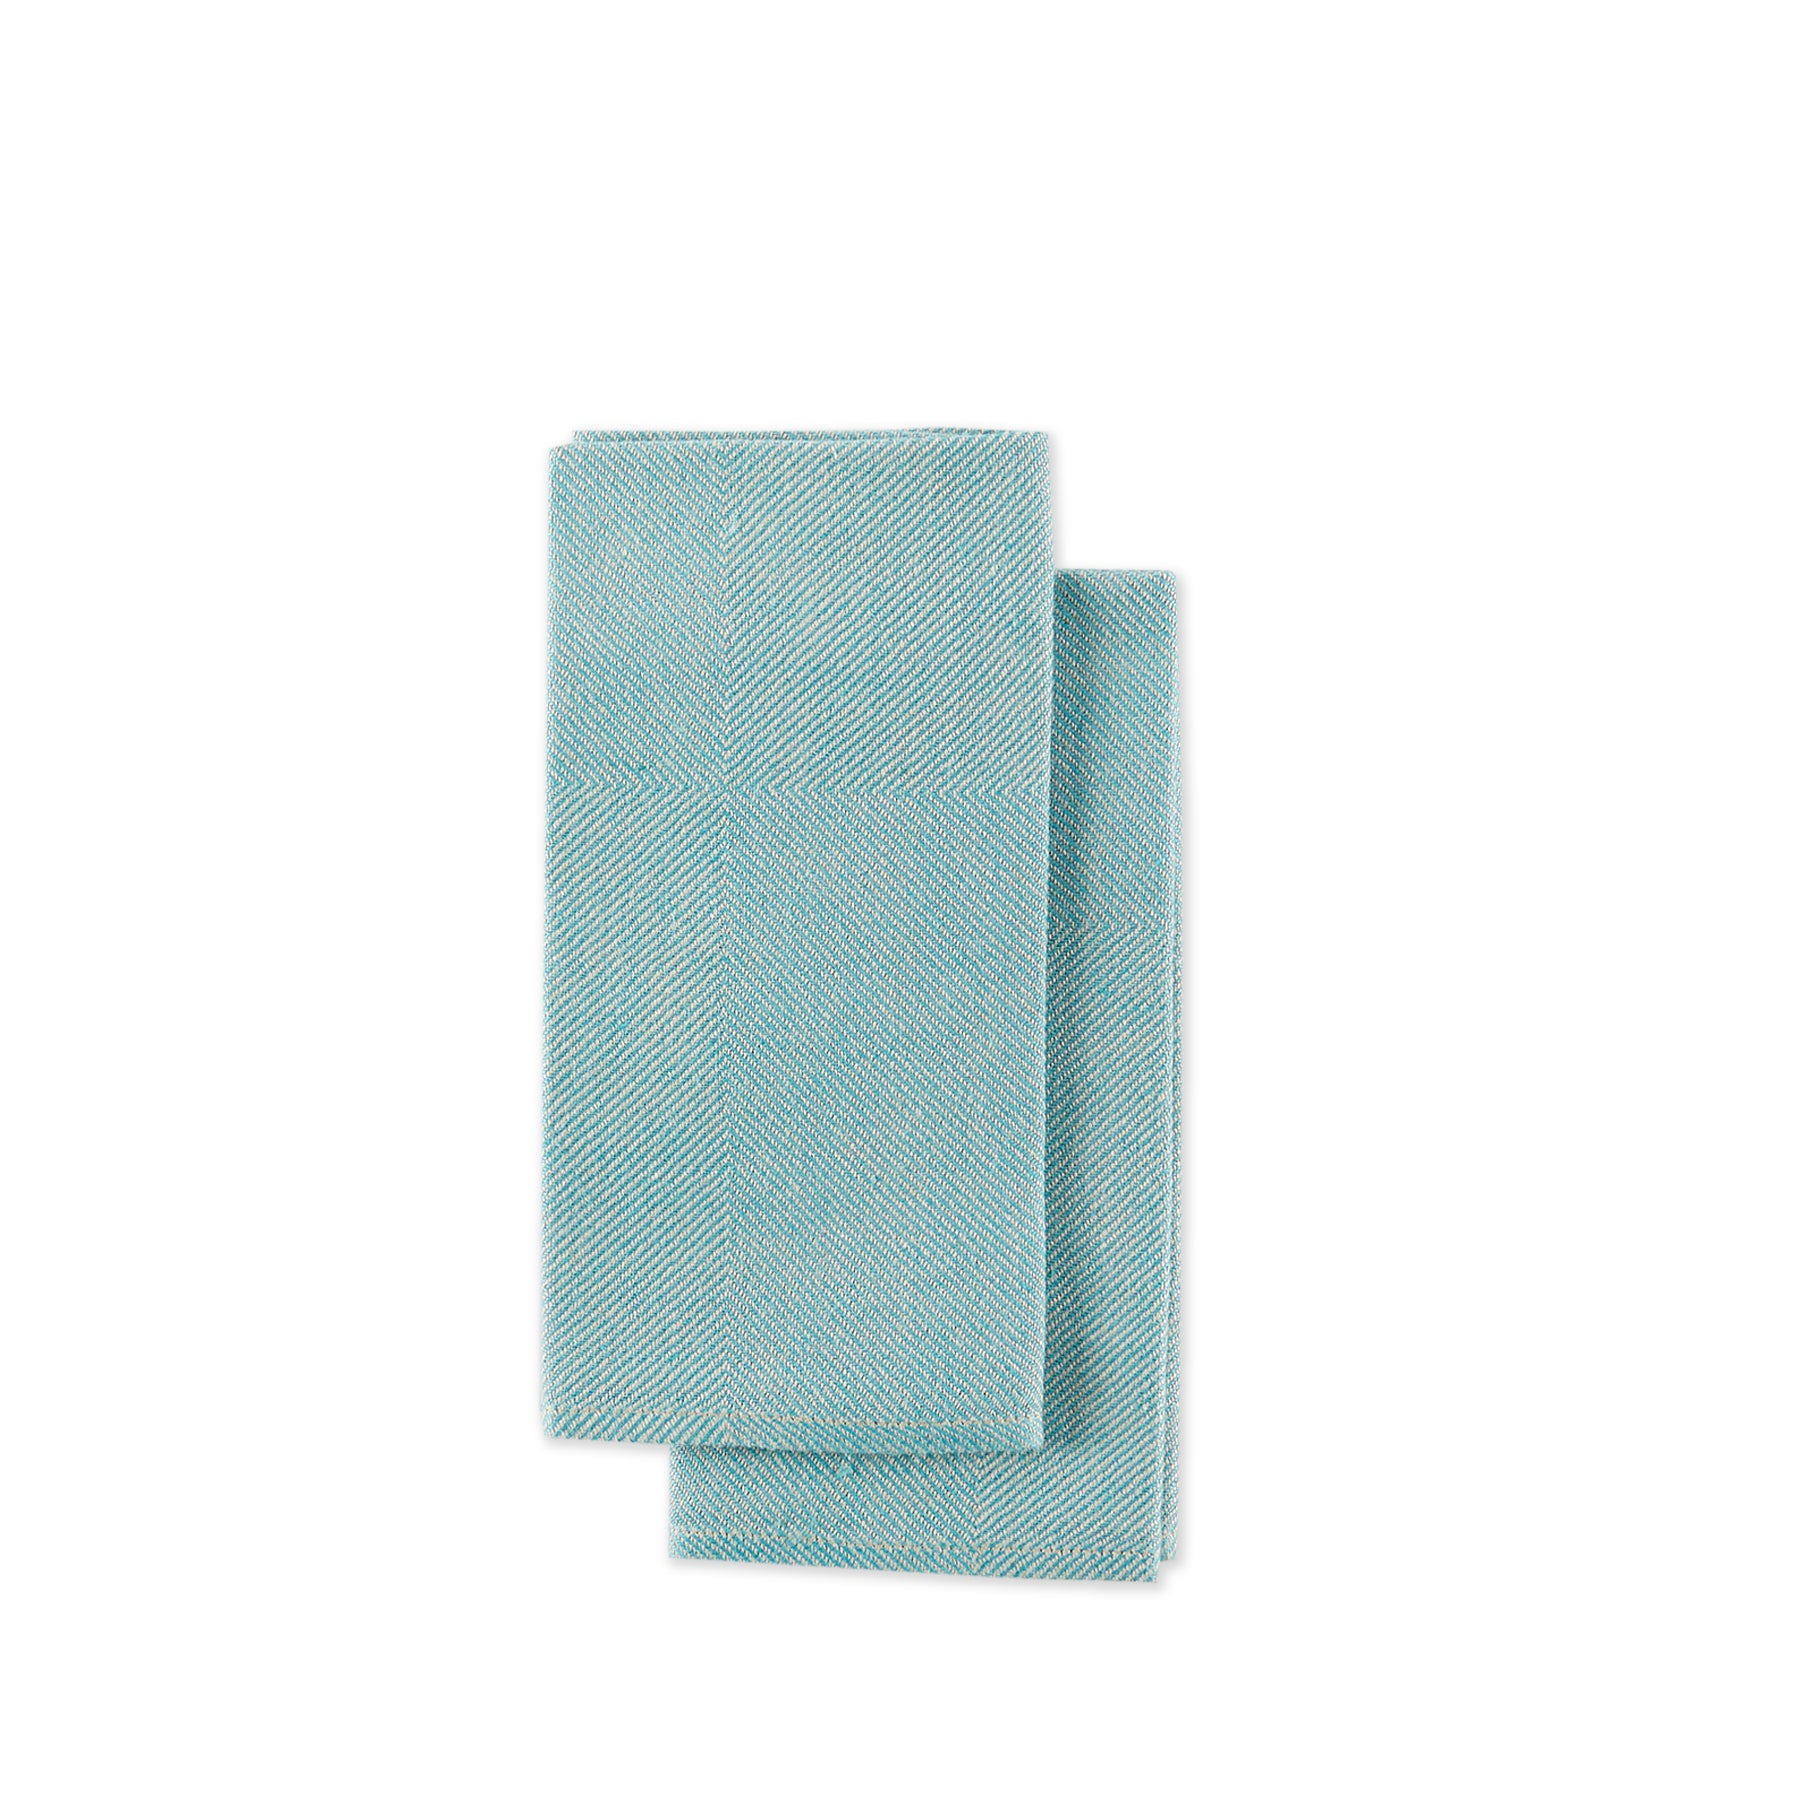 Kypert Napkins in Turquoise (Set of 2) Zoom Image 1